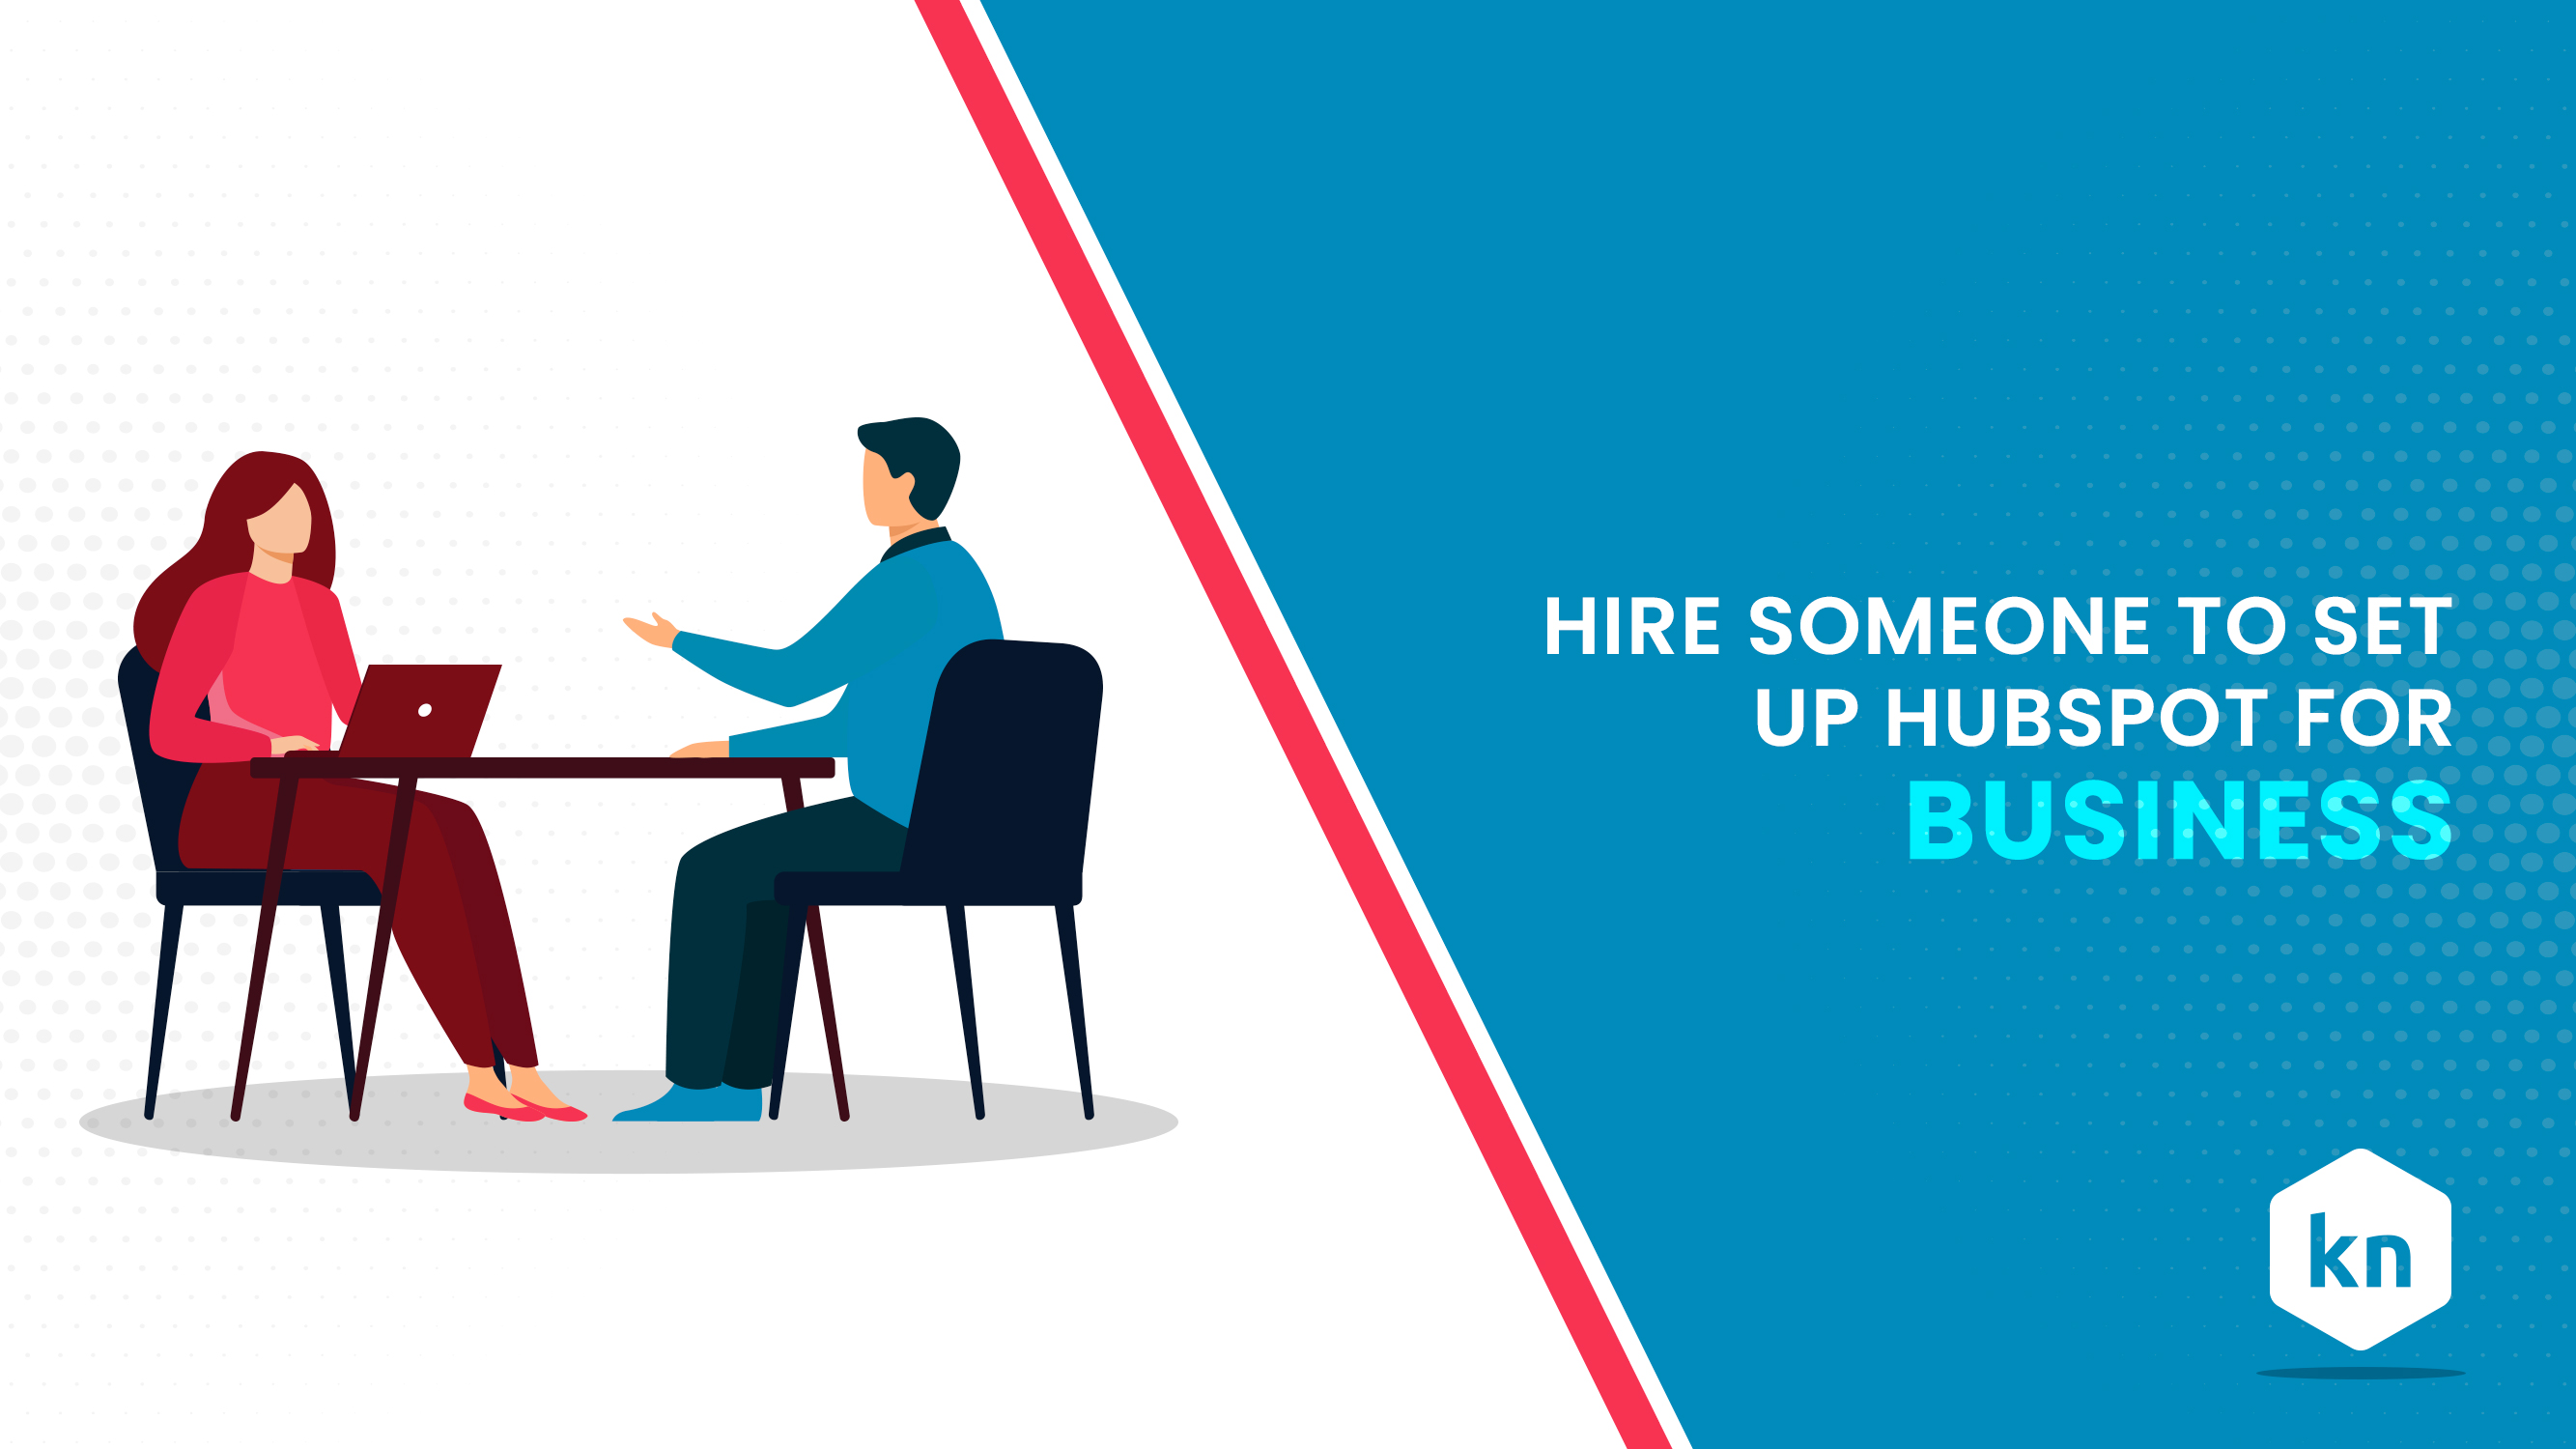 Hire Someone To Set Up HubSpot For Your Business